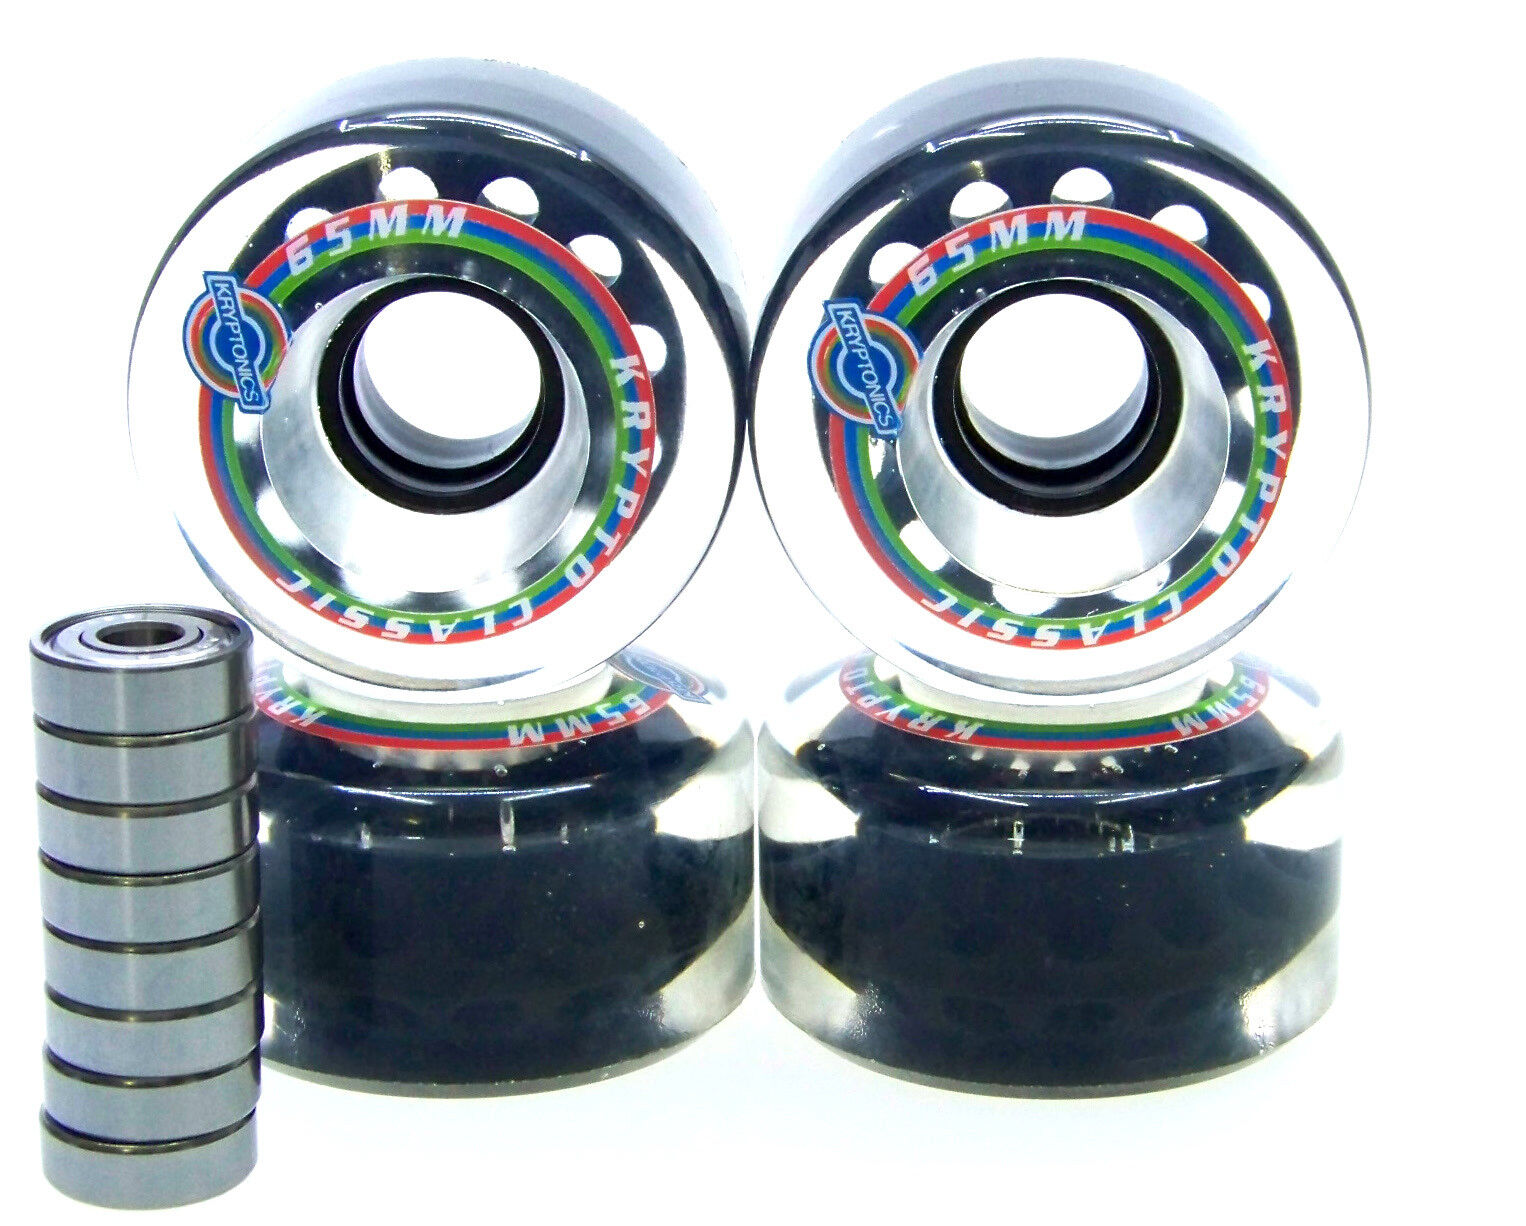 Longboard Rolle Kryptonics Classic 65mm 65mm 65mm / 78A ABEC Lager Set Ersatzrolle CLEAR 17fd13